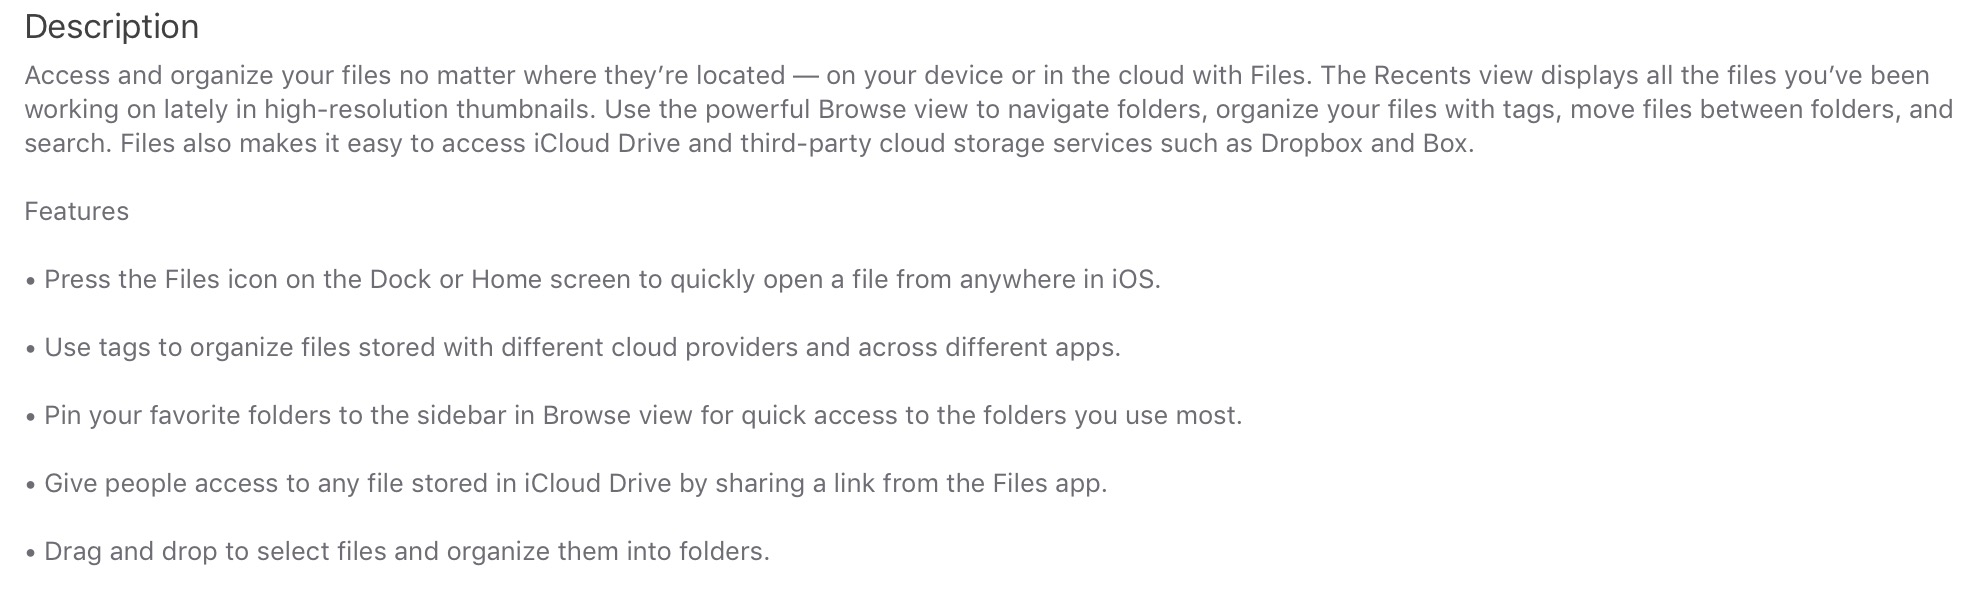 files for ios feature